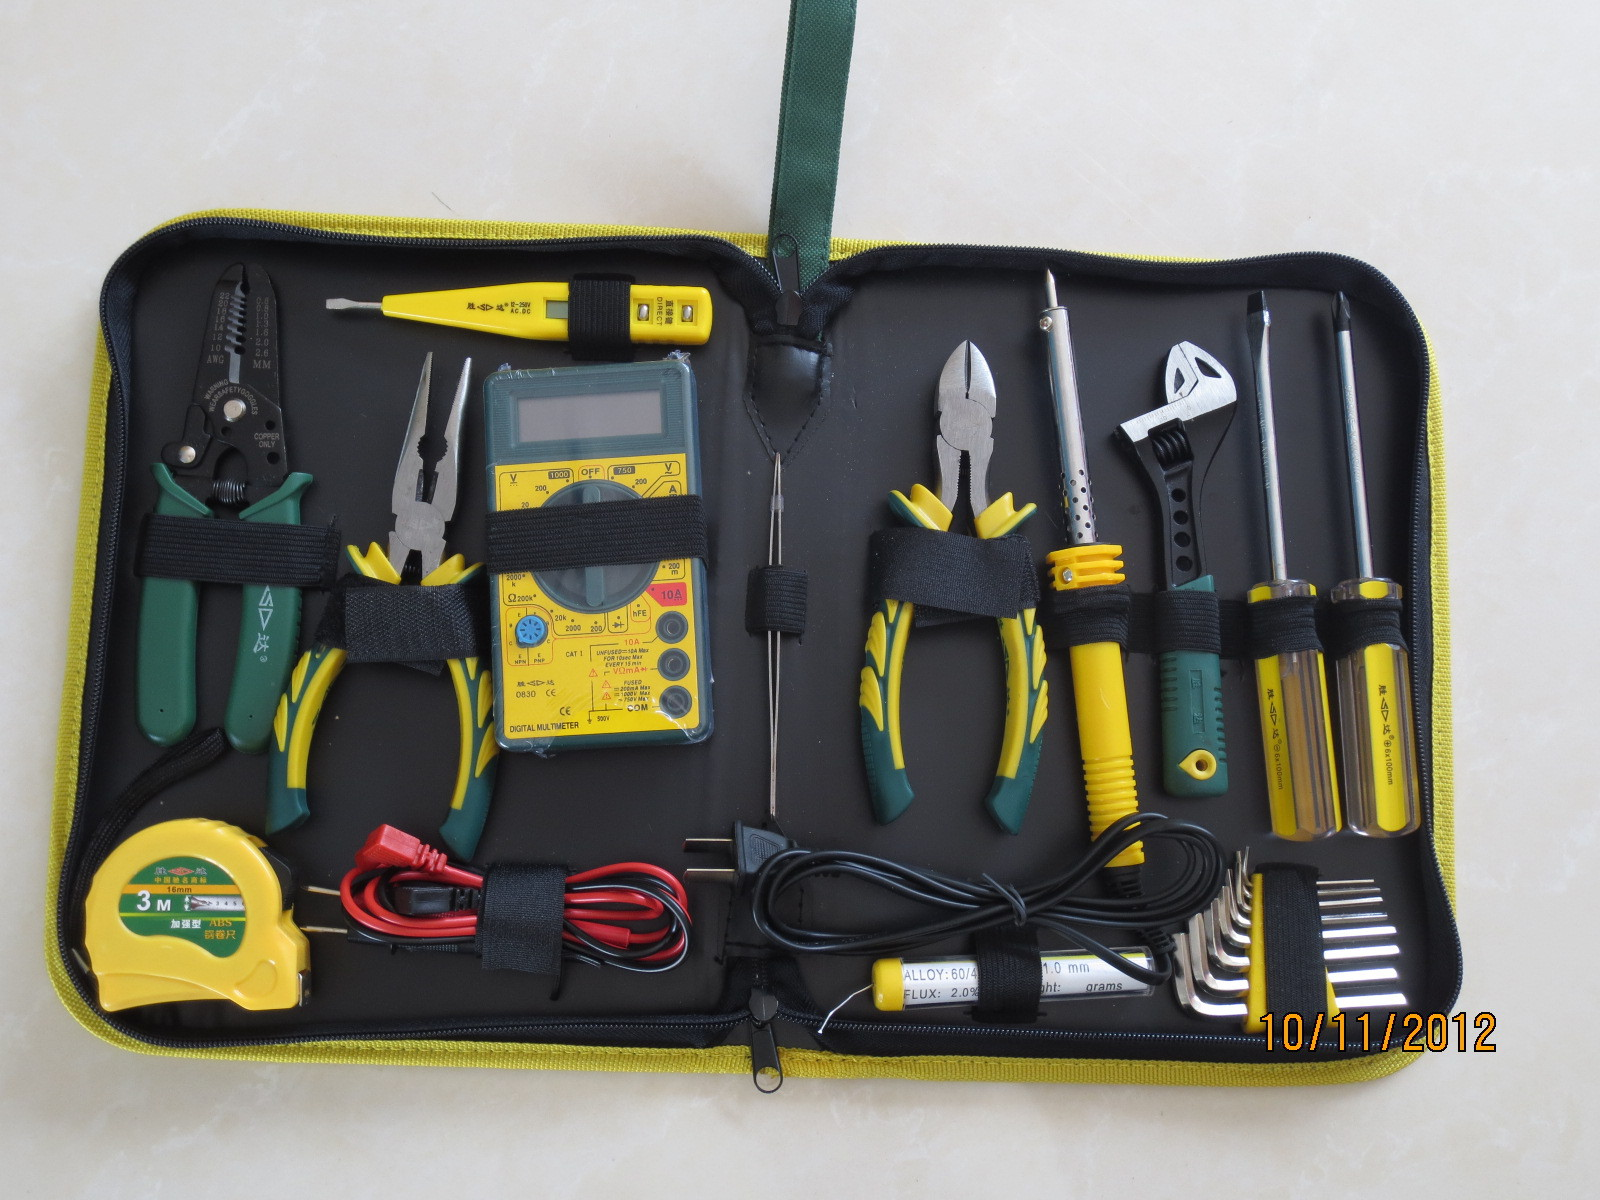 Up To 20 Sets Of Tools For The Use Of The Tool Kit Set Of Electrical Appliances Electric Power Maintenance Hardware Tools Linyi rowan gibson the four lenses of innovation a power tool for creative thinking